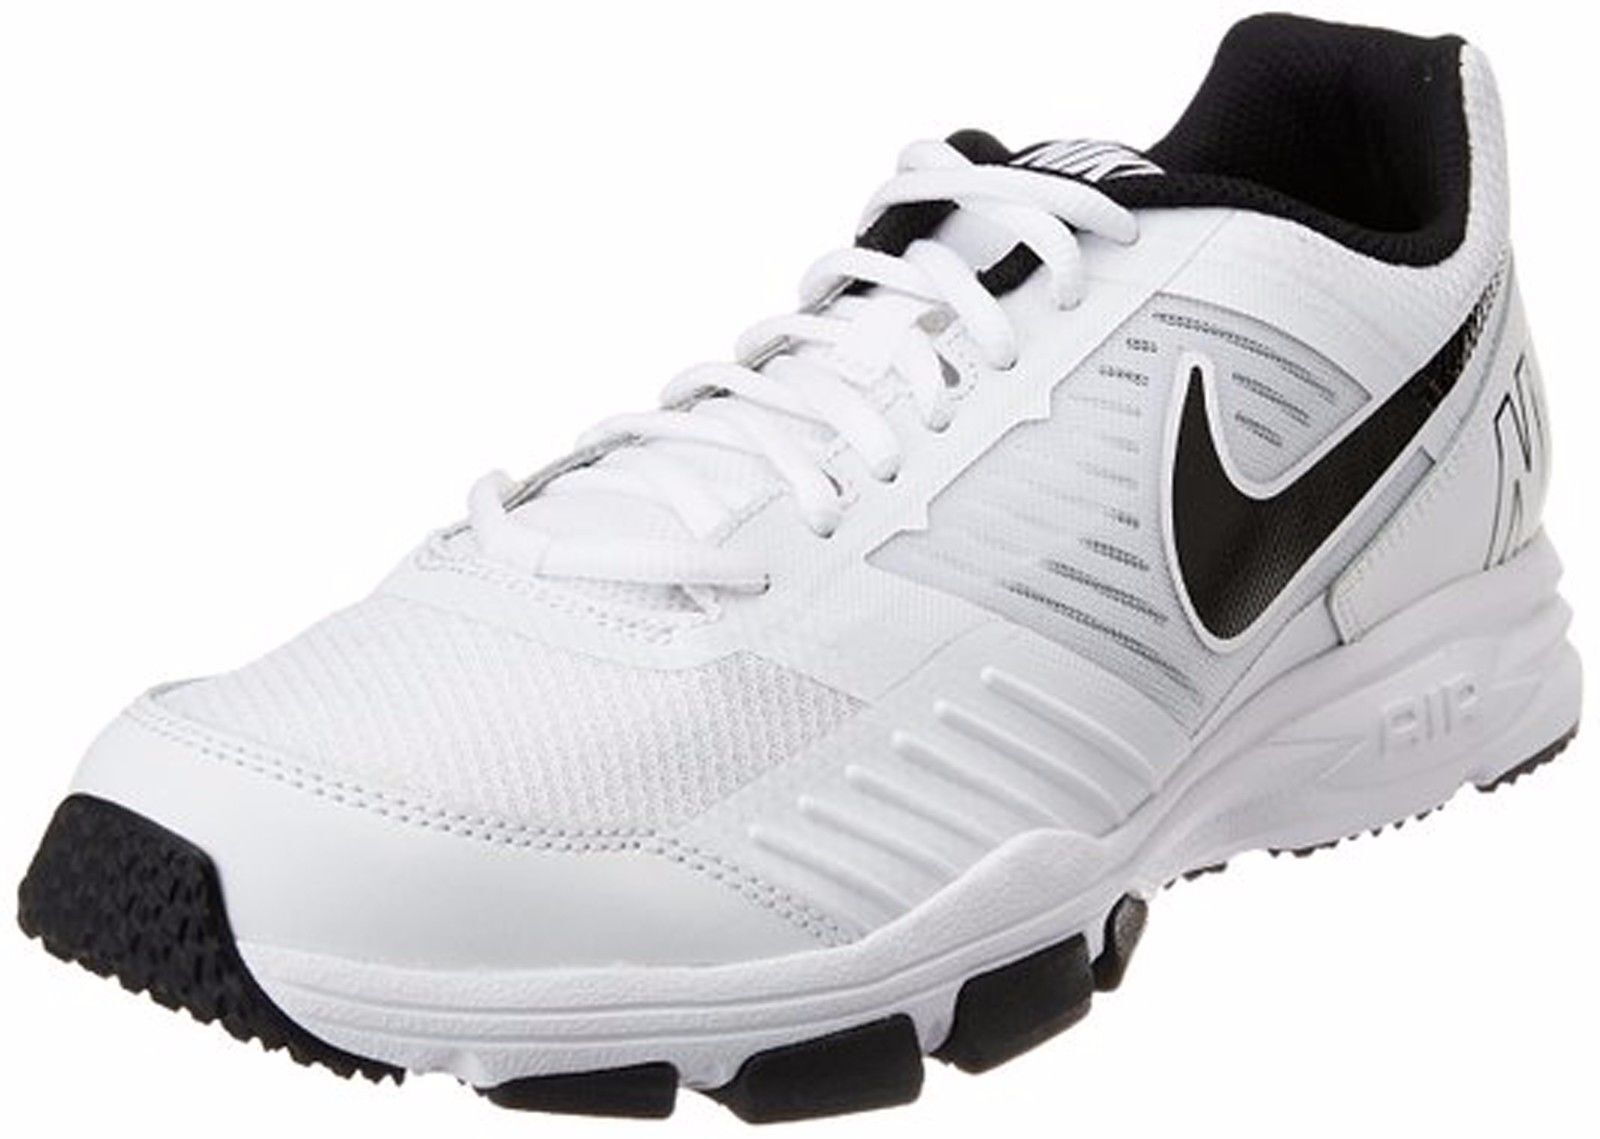 The latest discount shoes for men and women New Nike Training 704923-100 Men's White Synthetic Running Shoes Price reduction